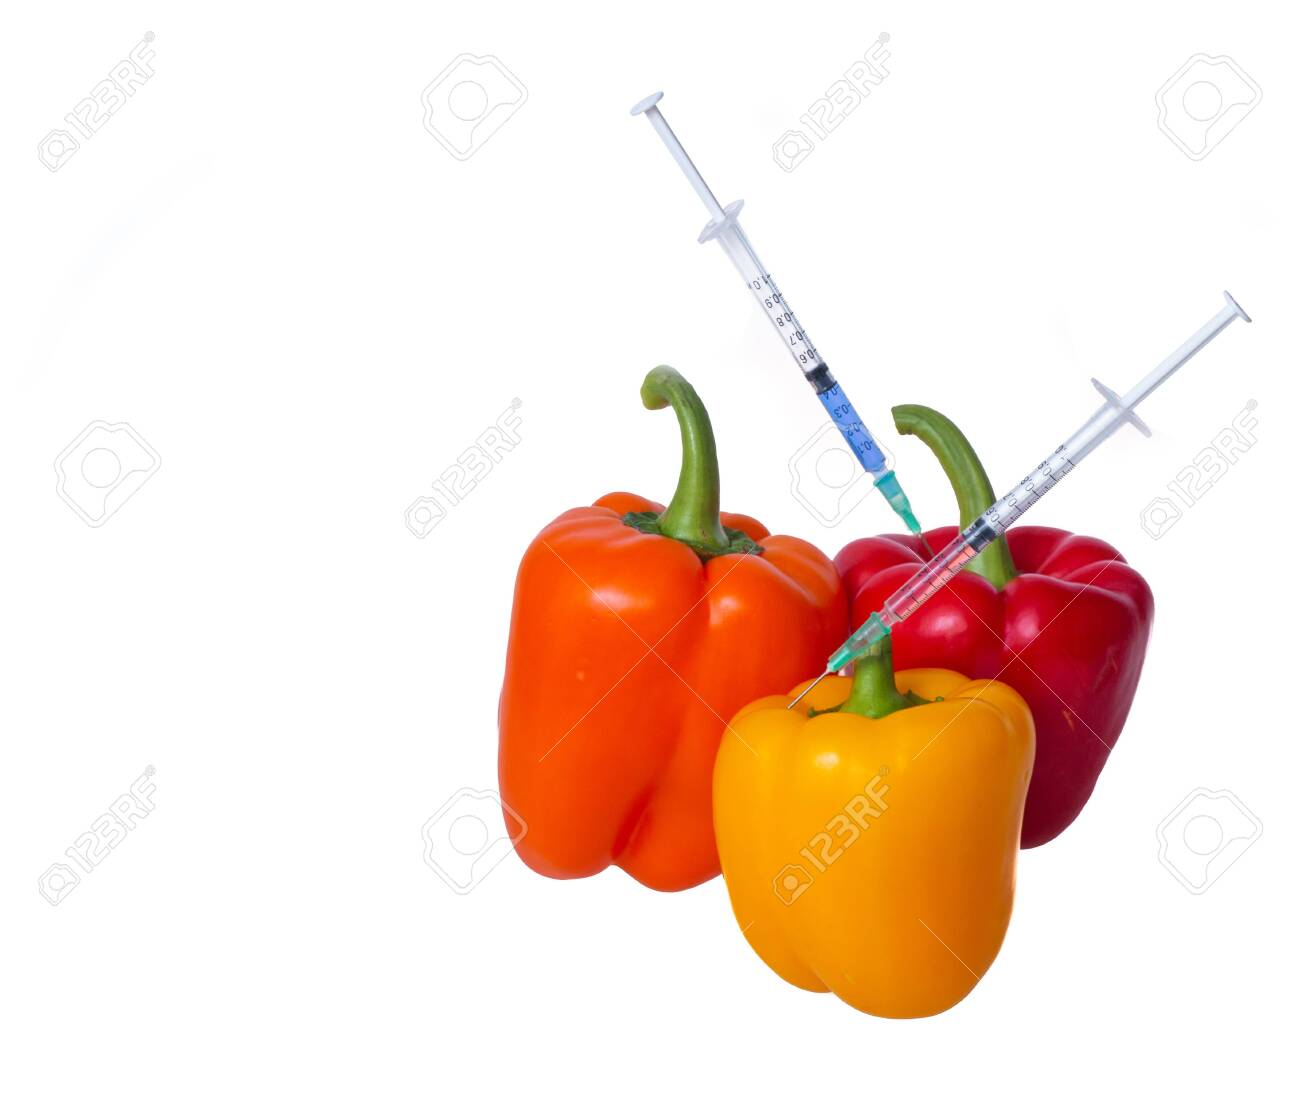 Genetically modified vegetables. GMO food concept. Syringes are stuck in vegetables with chemical additives. Injections into fruits and vegetables. Isolated on white background. - 139142225